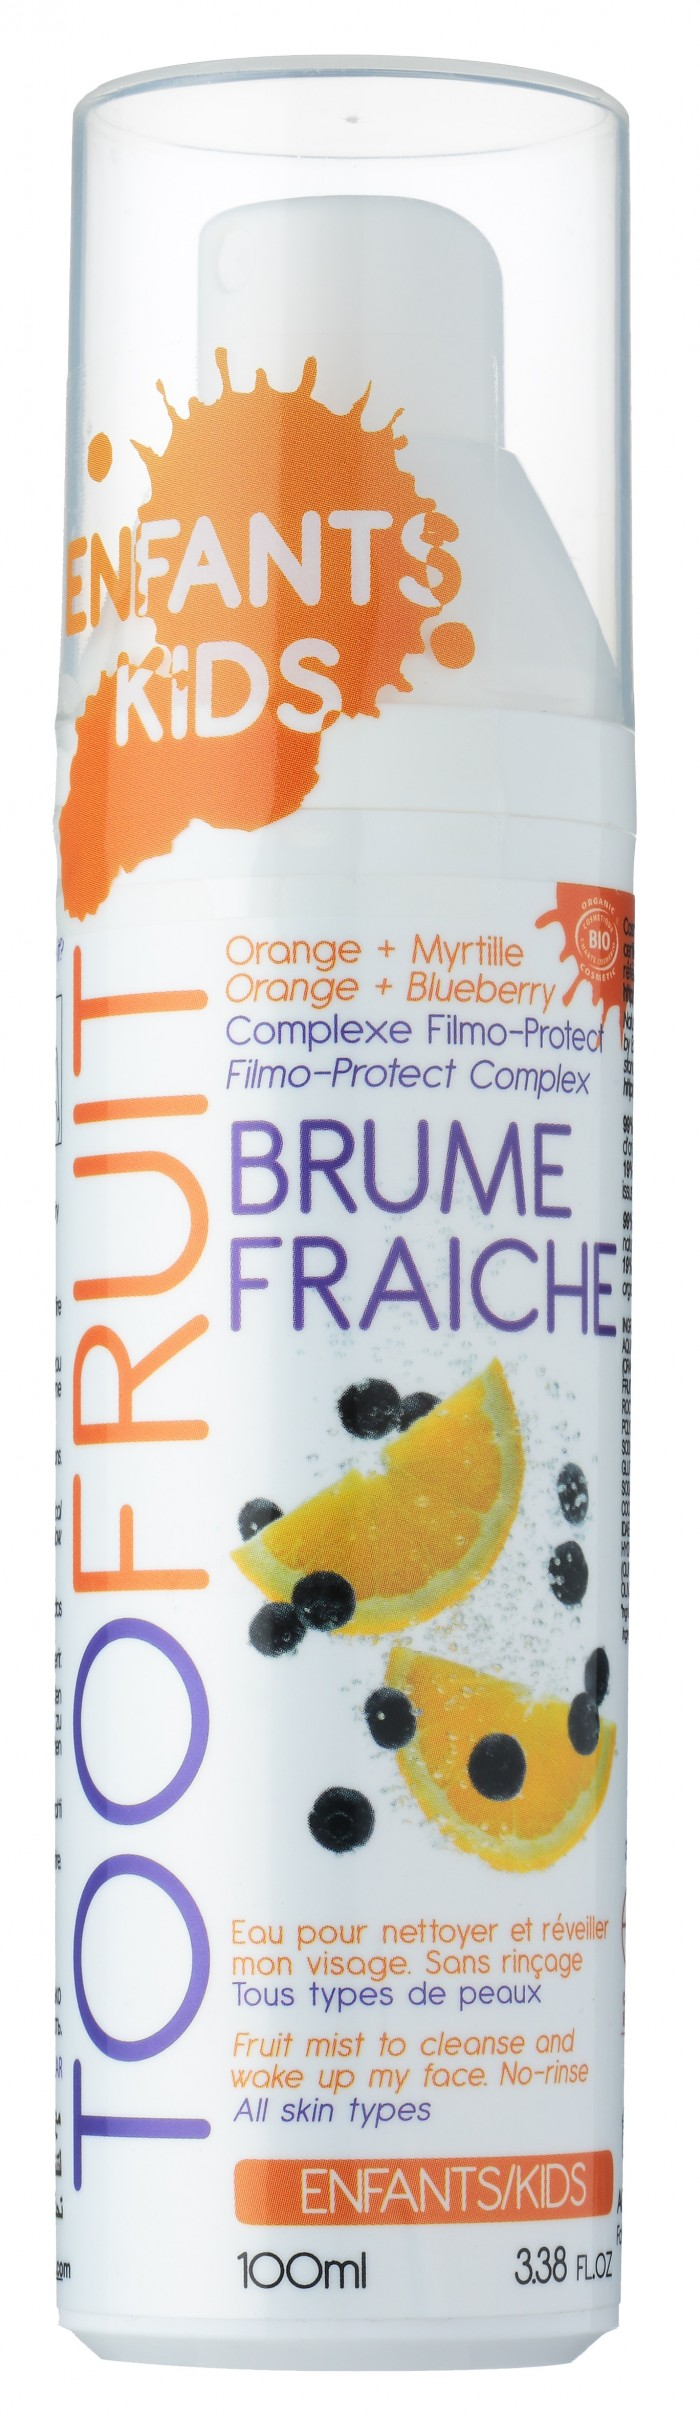 Brume Fraiche Orange - Myrtille  BIO